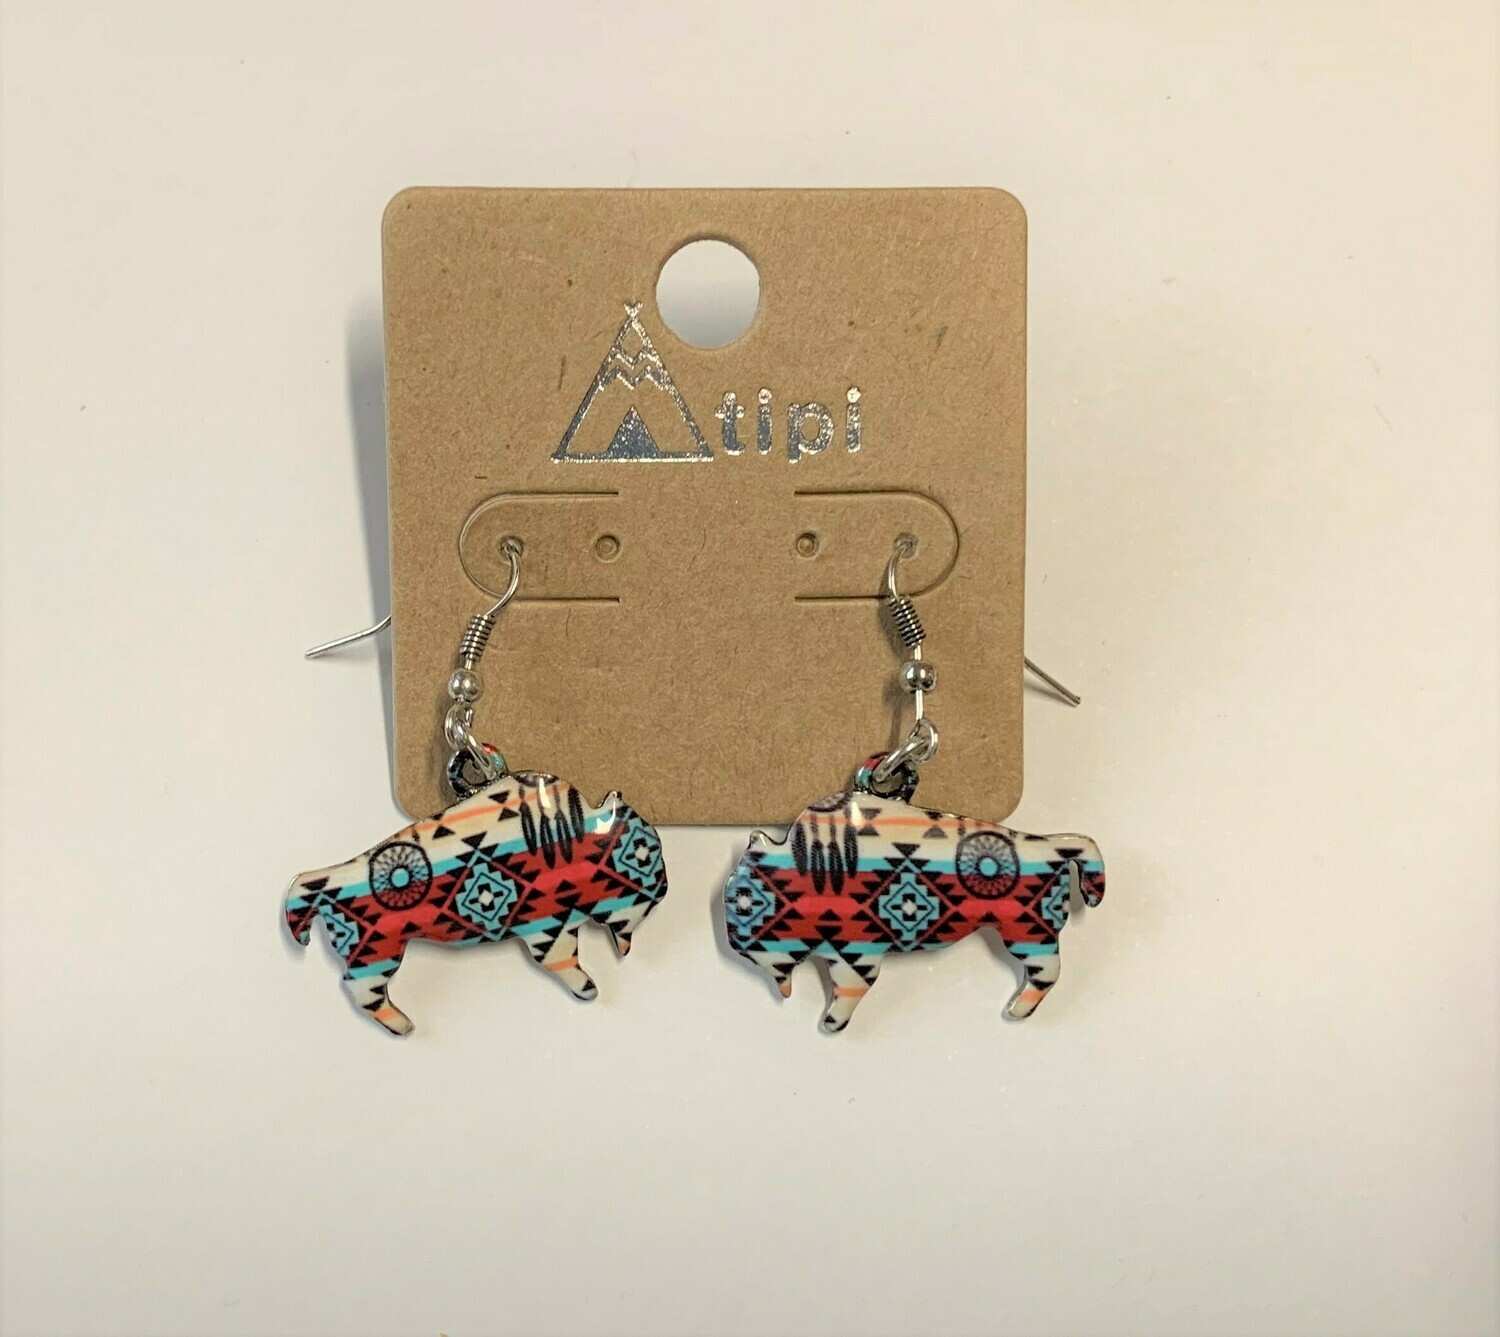 Dessert Dream Bison Earrings